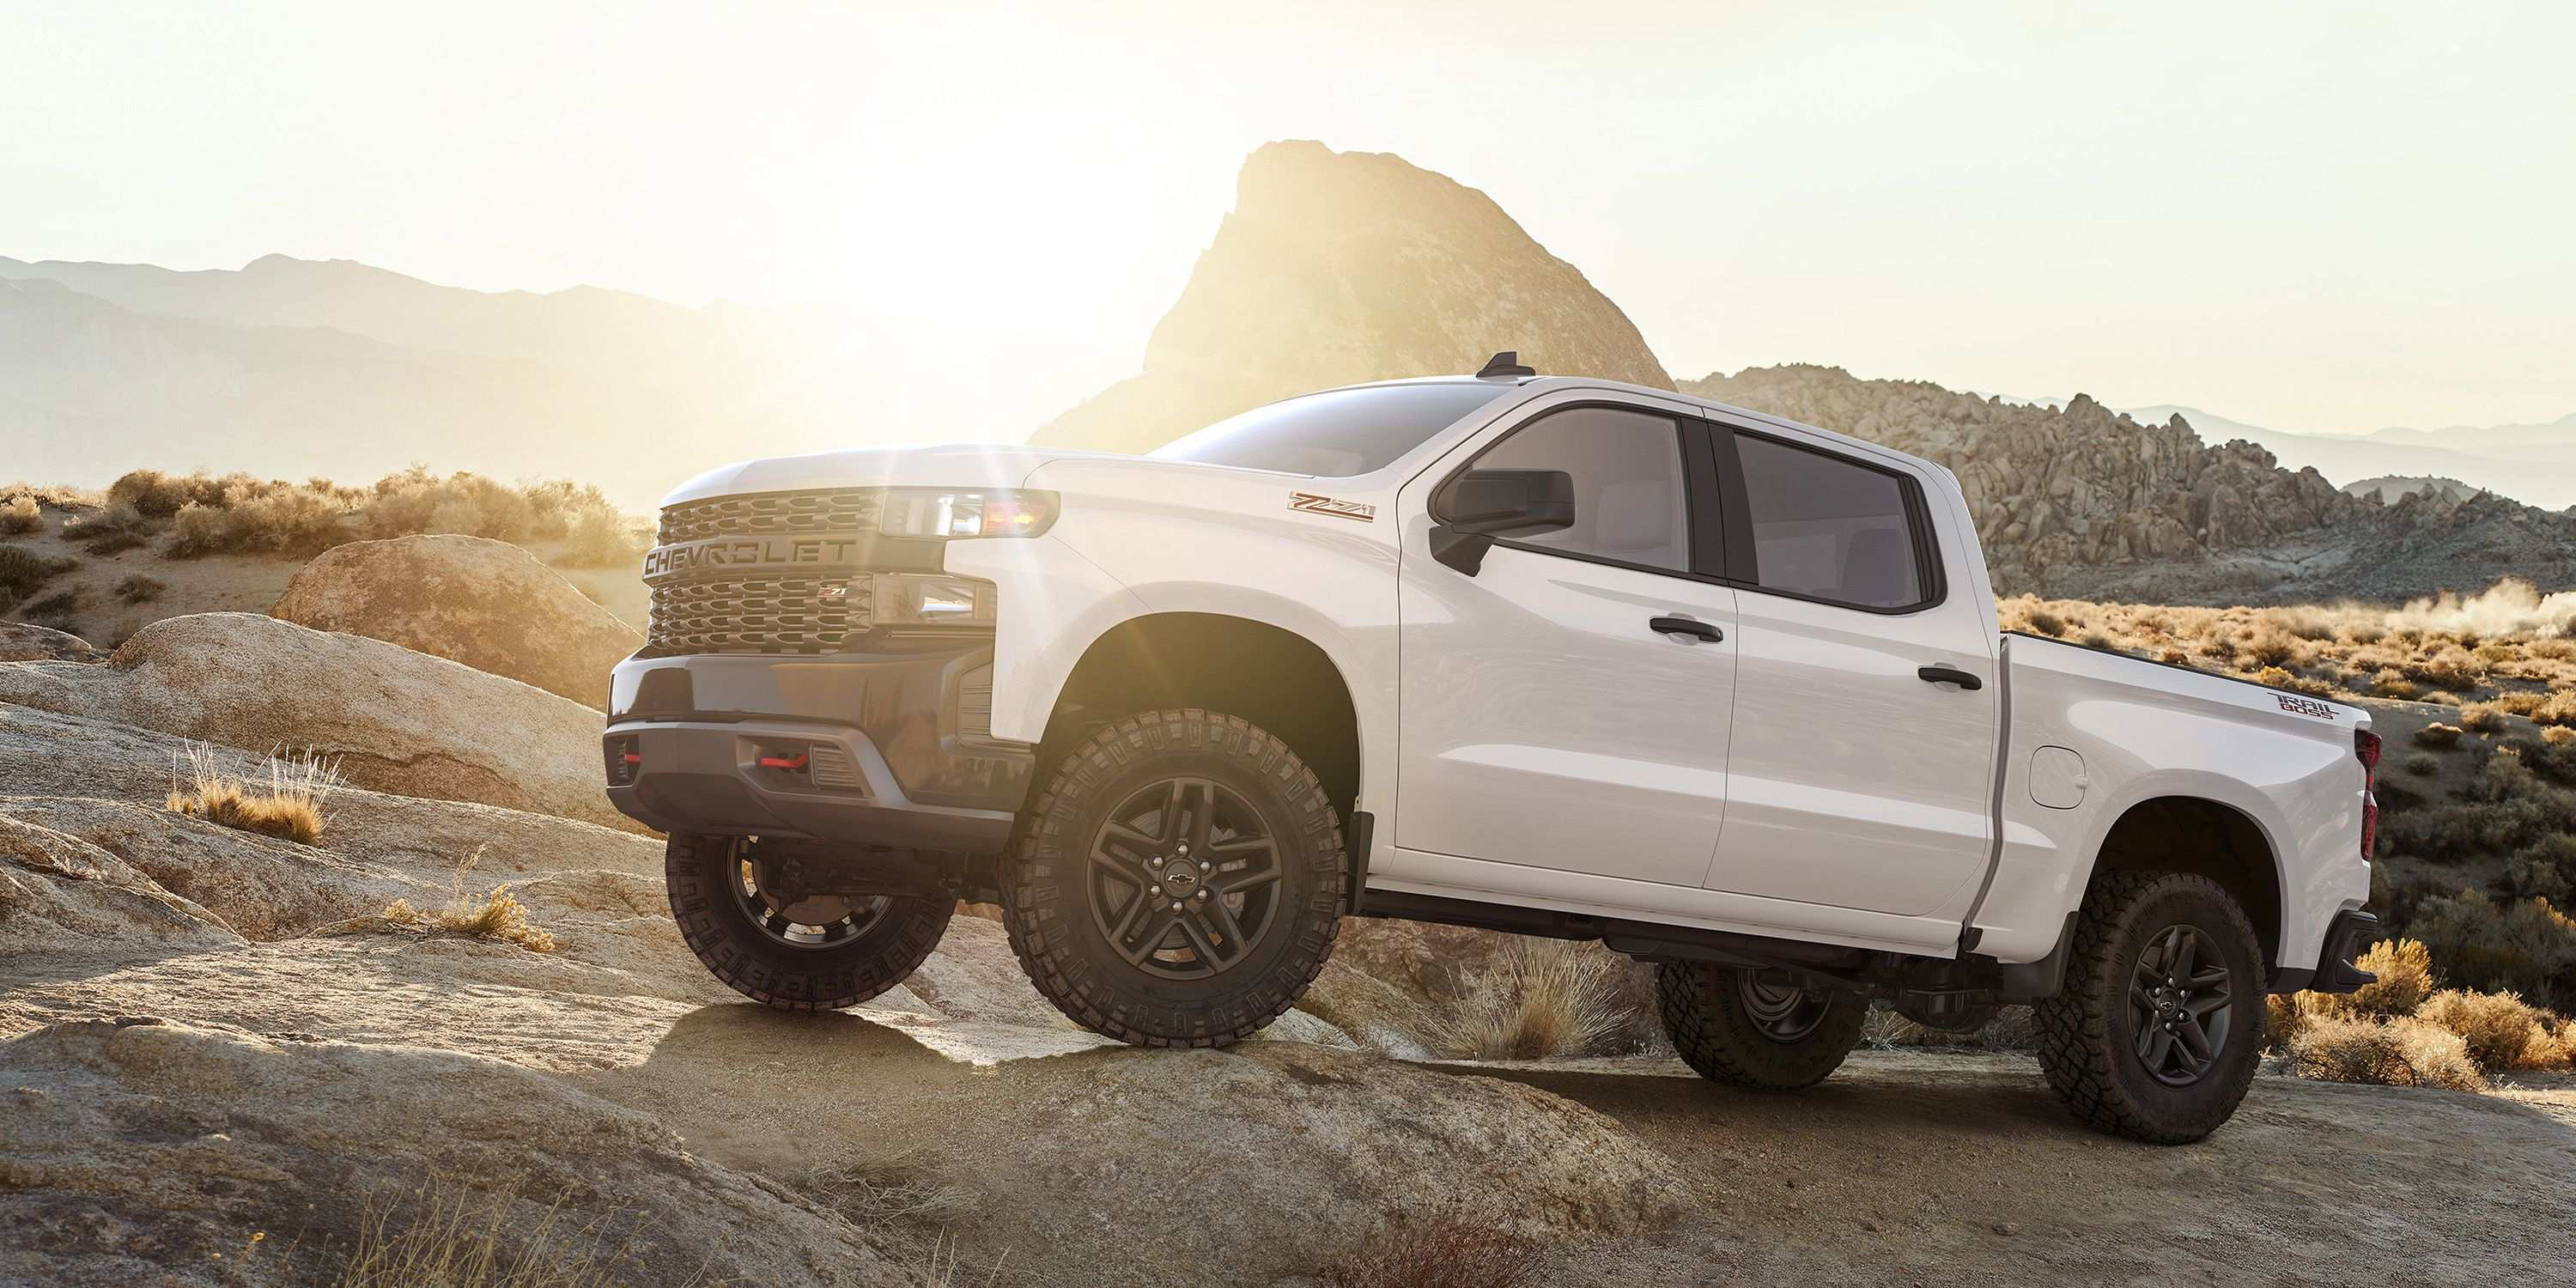 85 The New Gmc Sierra 2019 Weight Redesign And Price Specs for New Gmc Sierra 2019 Weight Redesign And Price